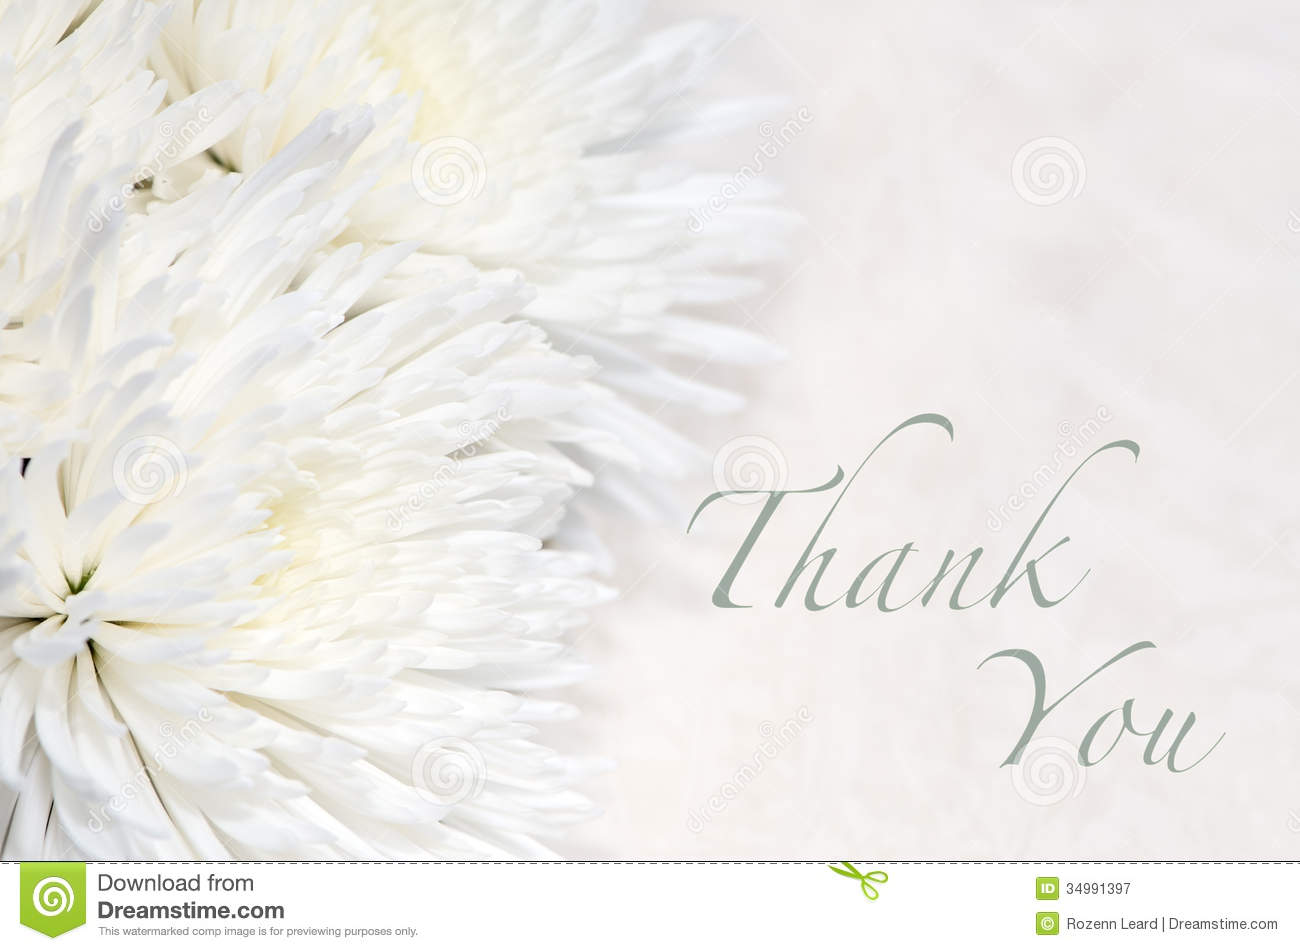 Funeral Thank You Card Royalty Free Stock Photography - Image ...